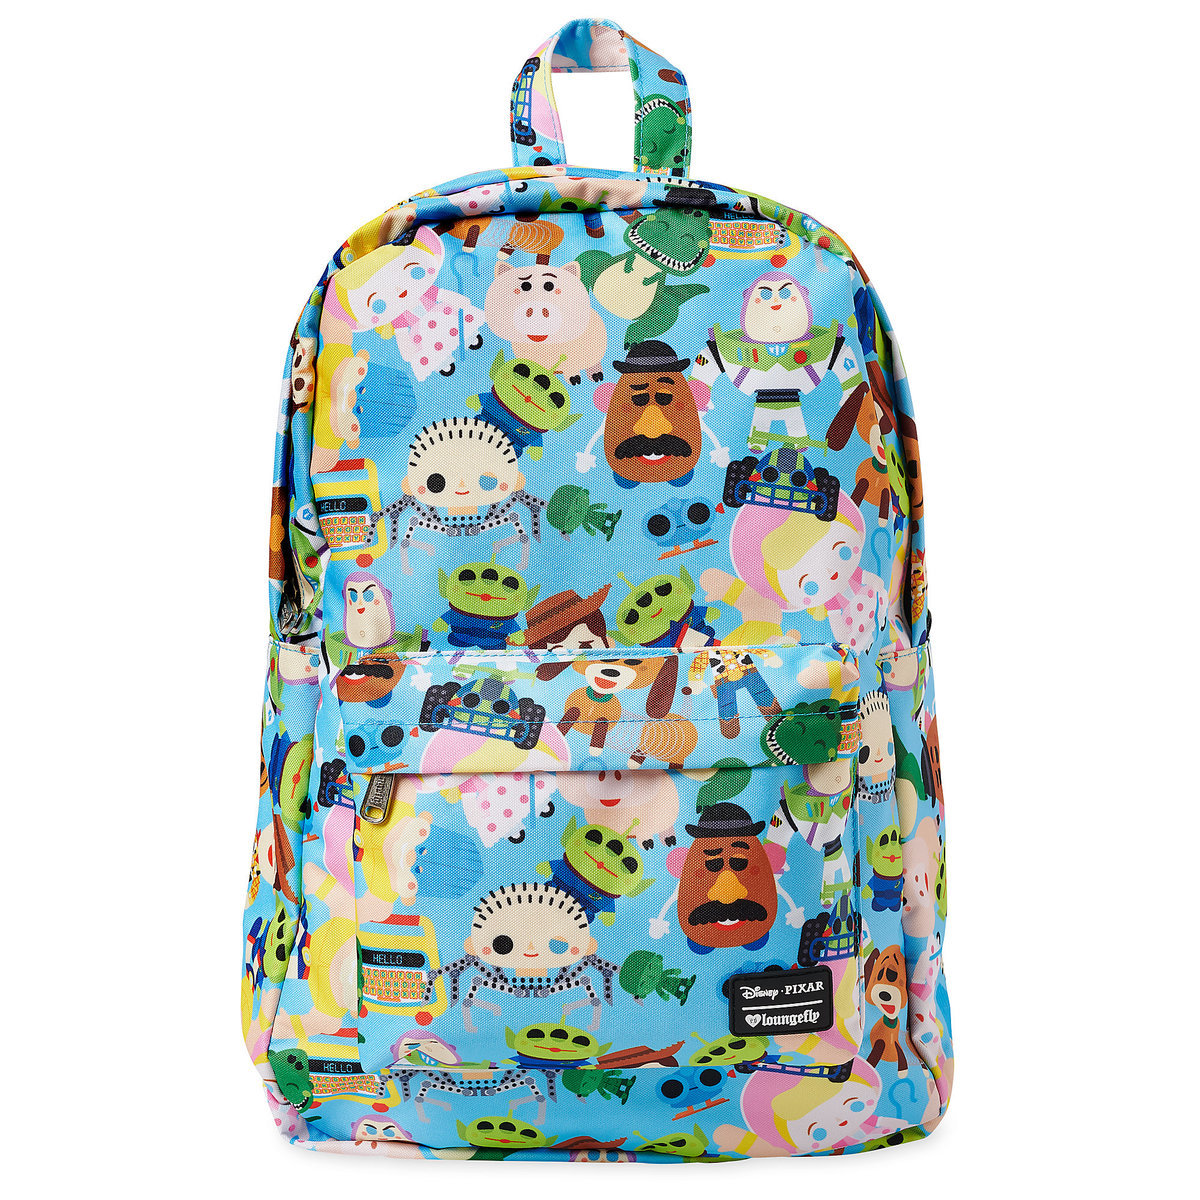 62b2cb6034e Product Image of Toy Story Backpack by Loungefly   1